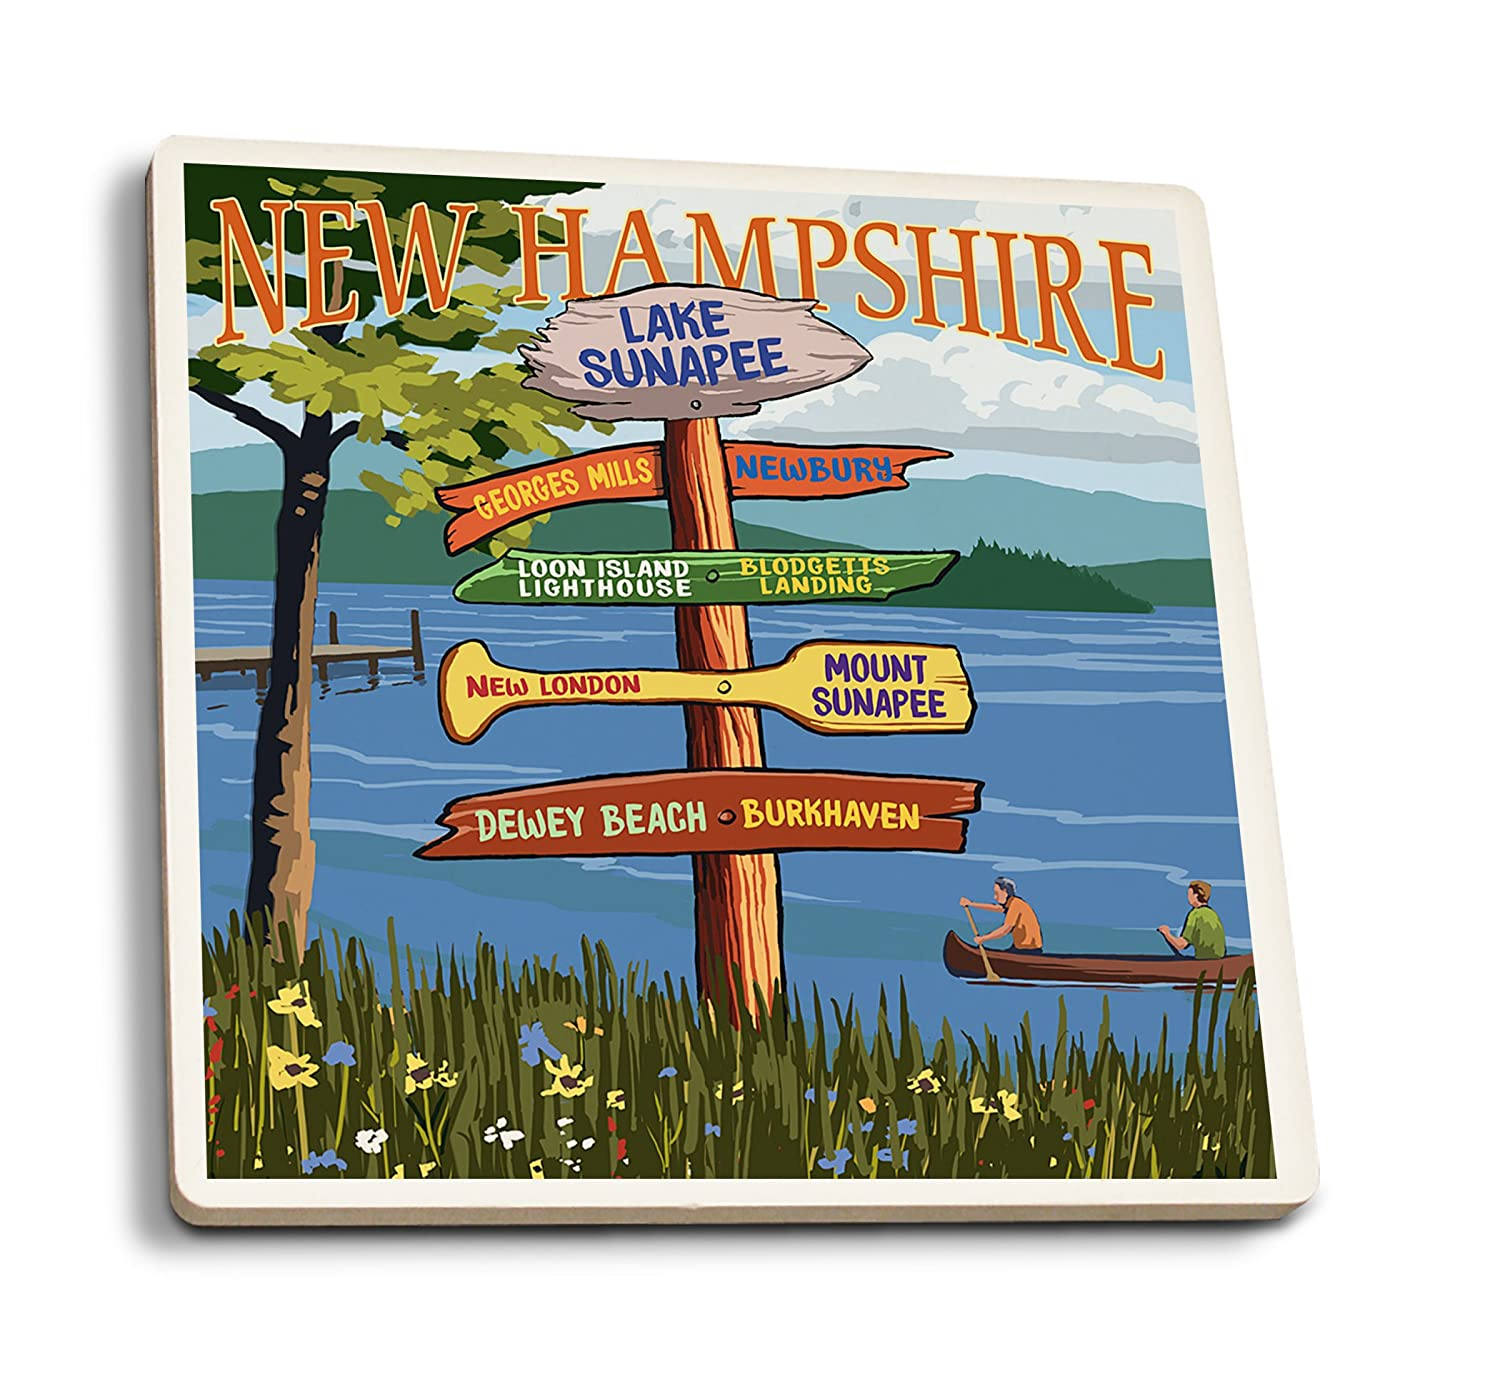 湖Sunapee、New Hampshire – Destinations Signpost 4 Coaster Set LANT-78337-CT 4 Coaster Set  B079YQ29L8